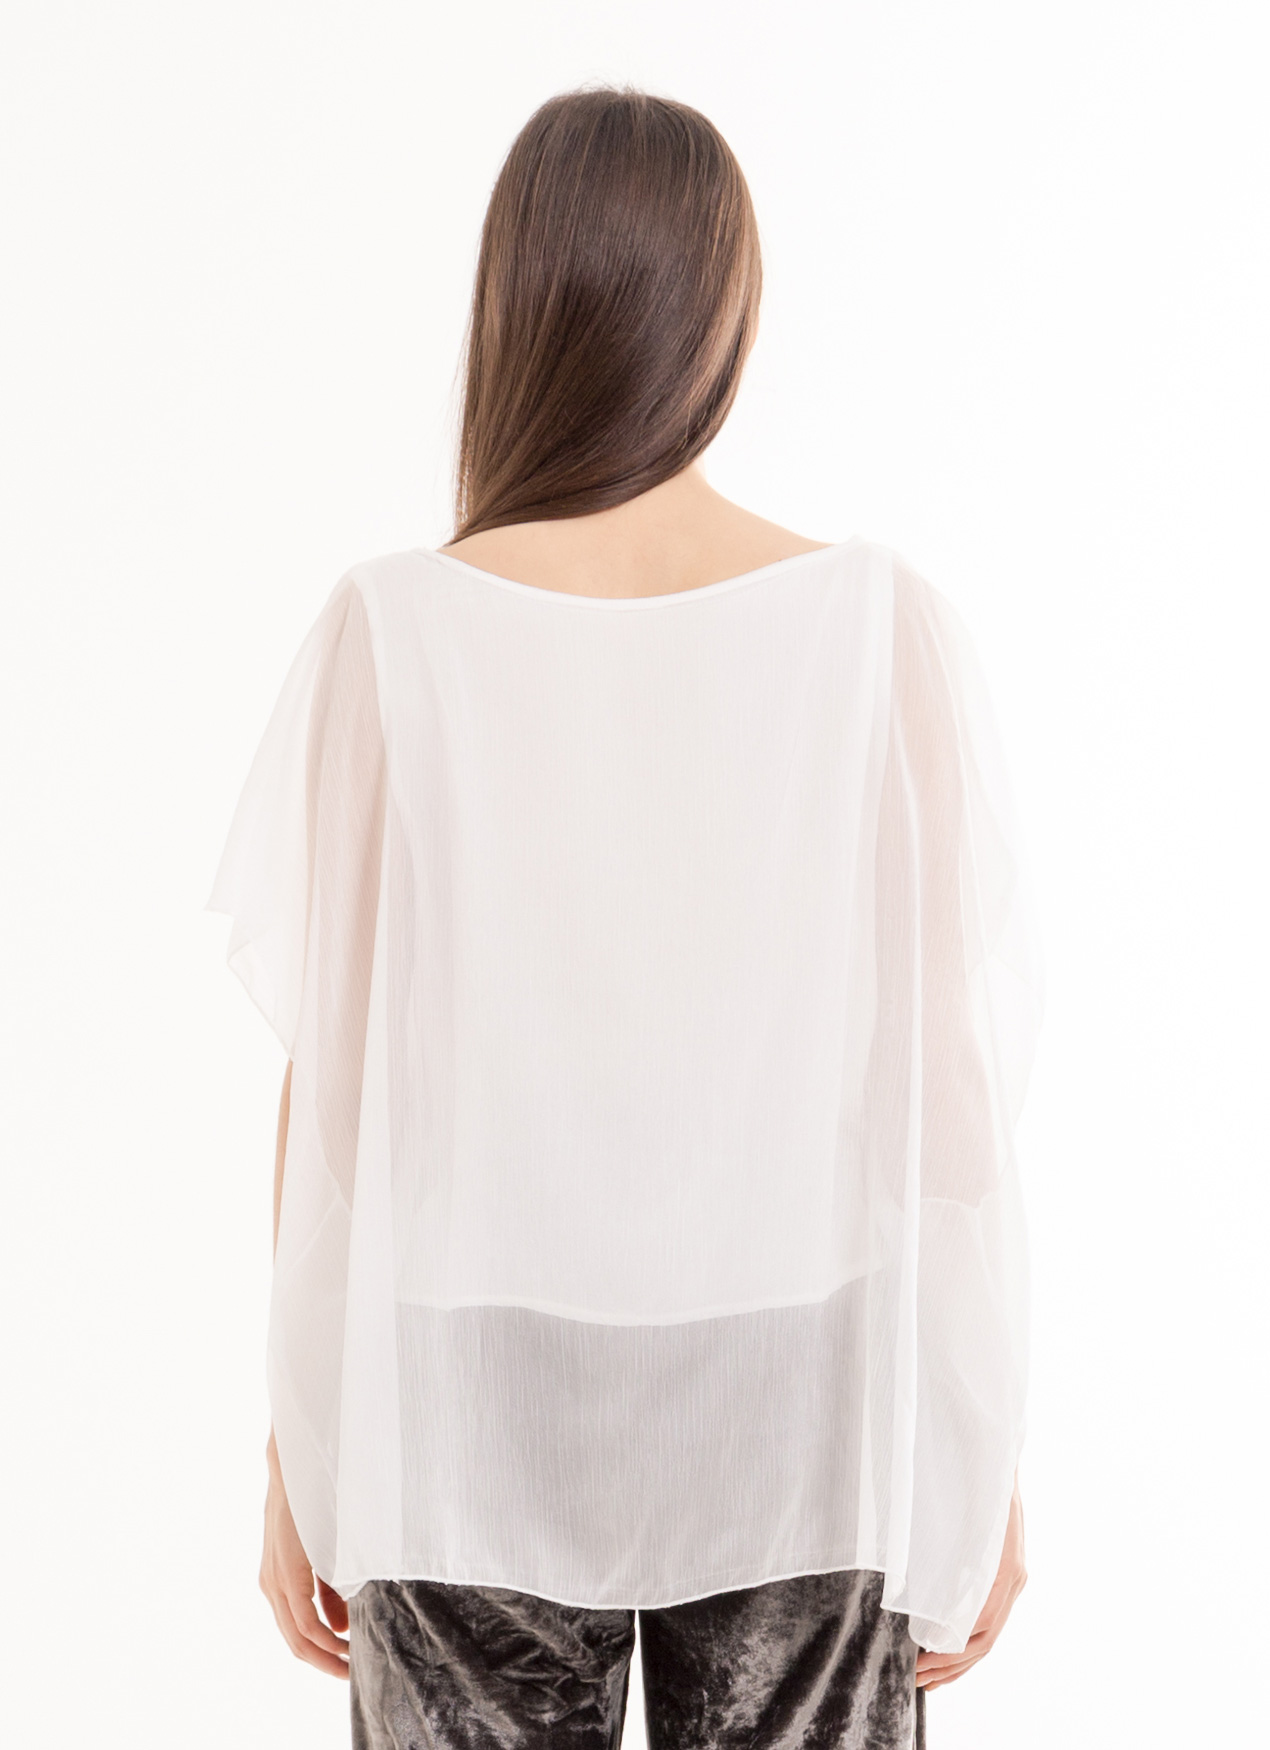 BOWN Hilda Top - White